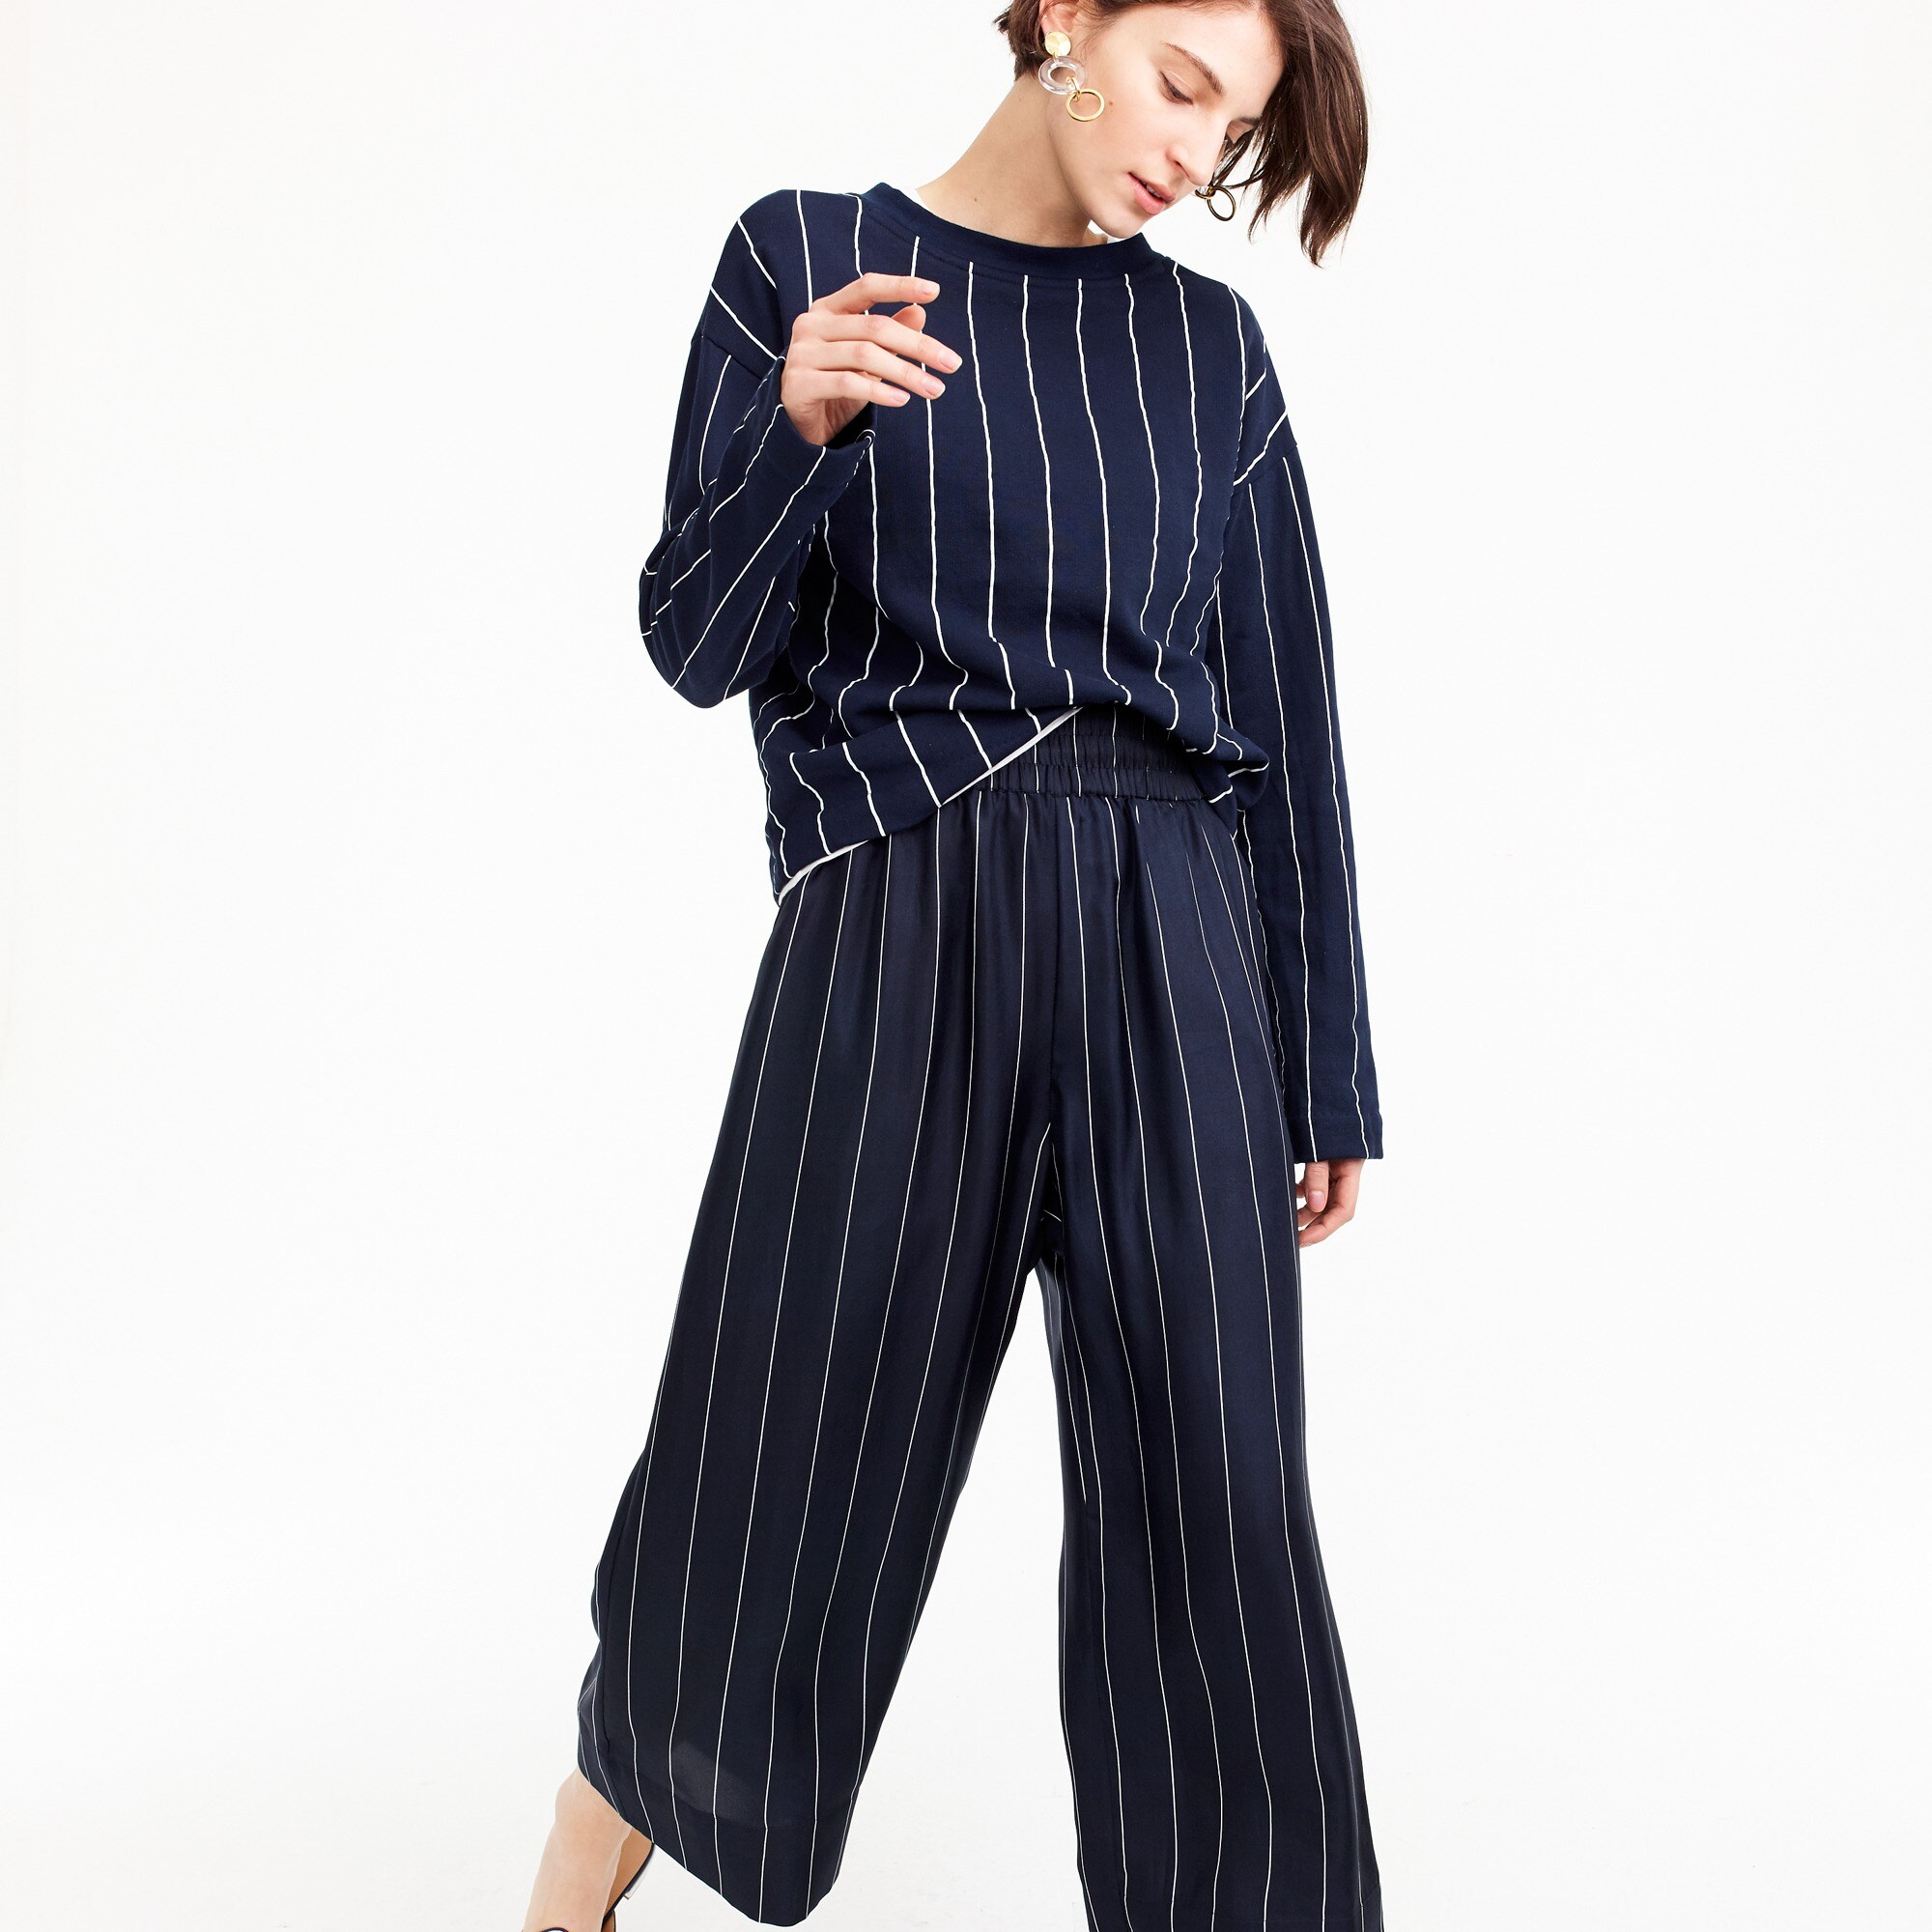 Image 1 for Cropped silk pull-on pant in pinstripe